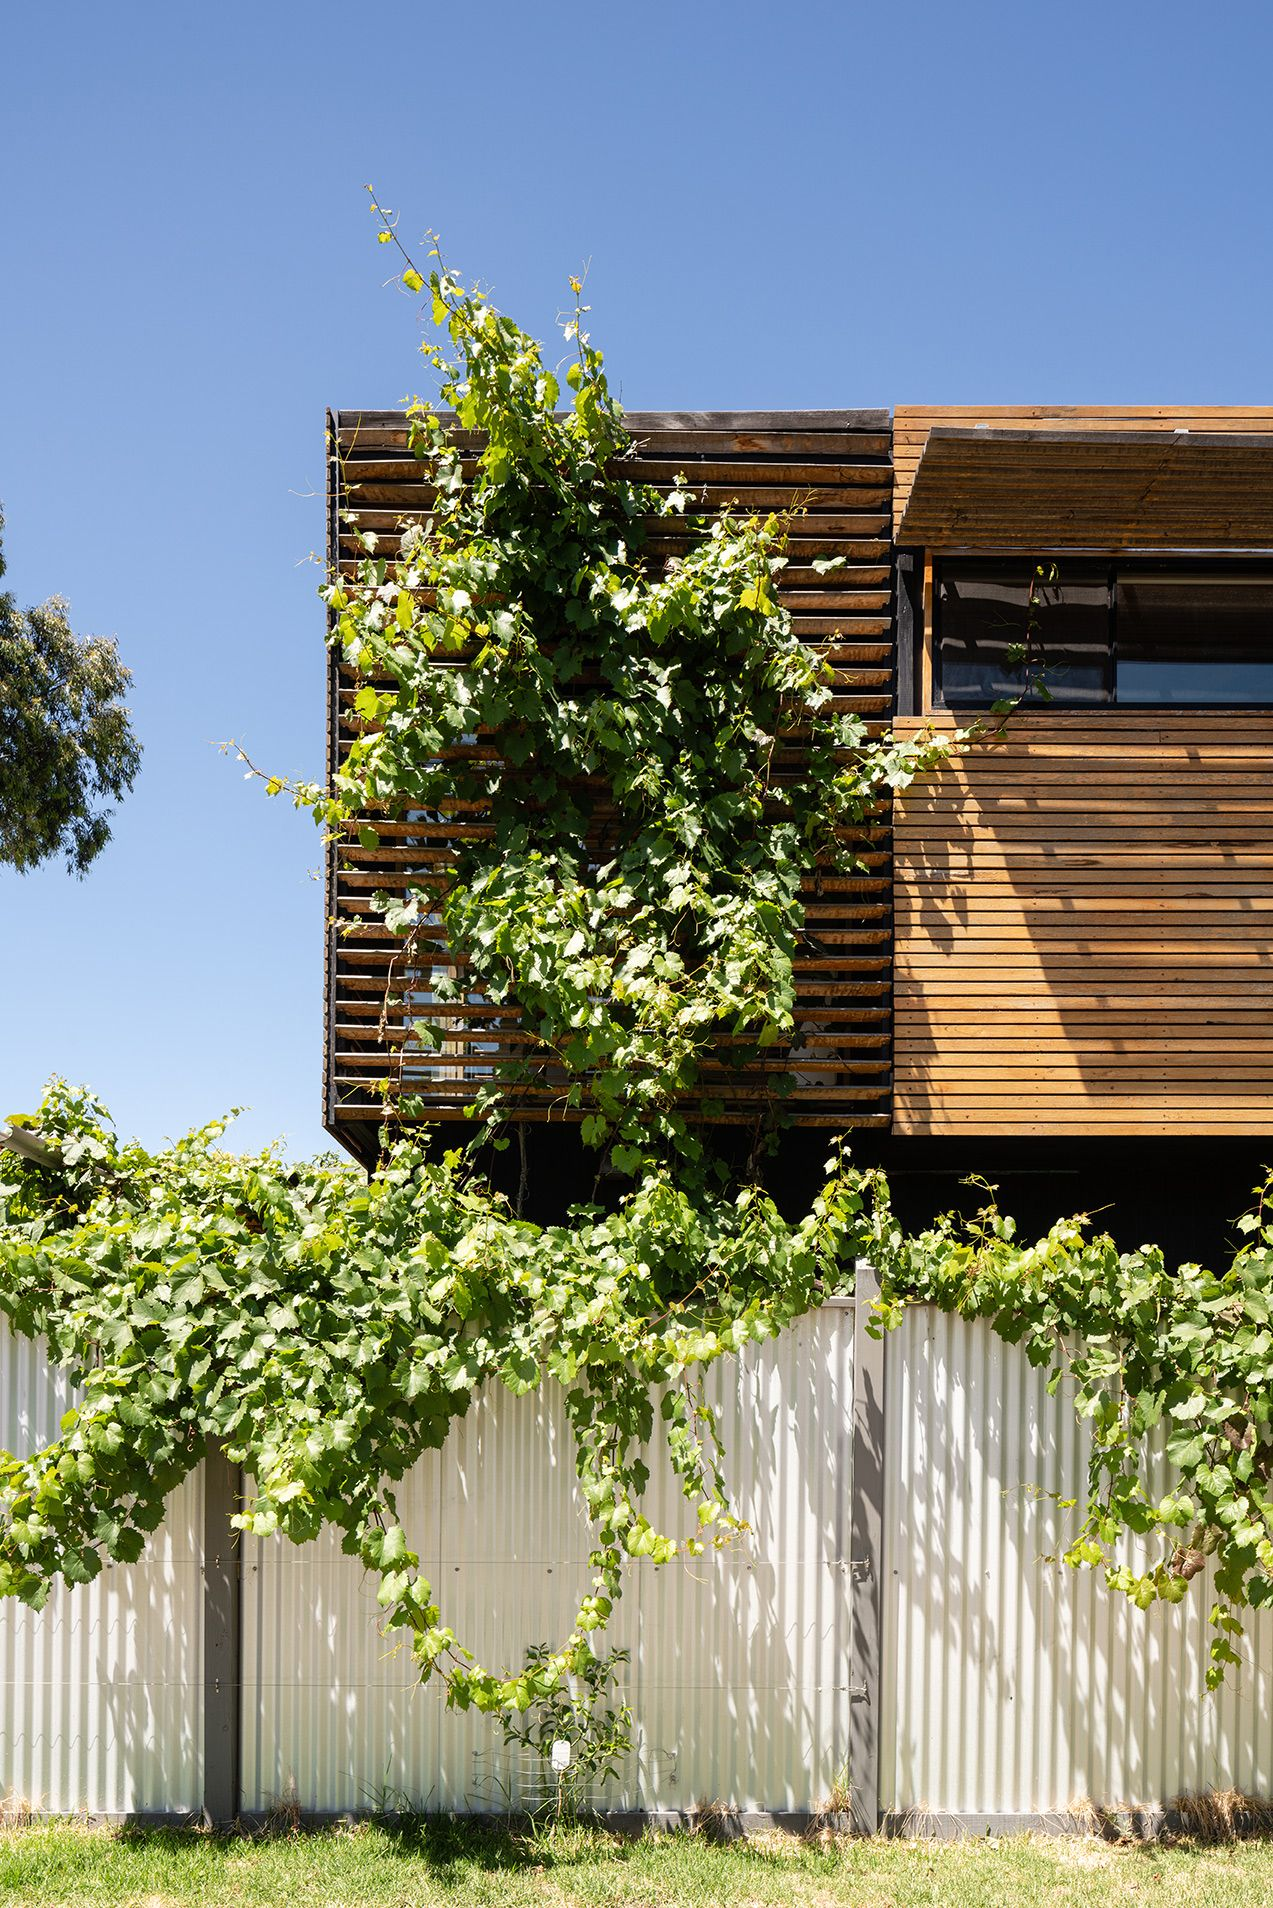 https://www.bencallery.com.au/wp-content/uploads/2015/05/42_-Callery-House-Ben-Callery-Architects-high-res-14.jpg